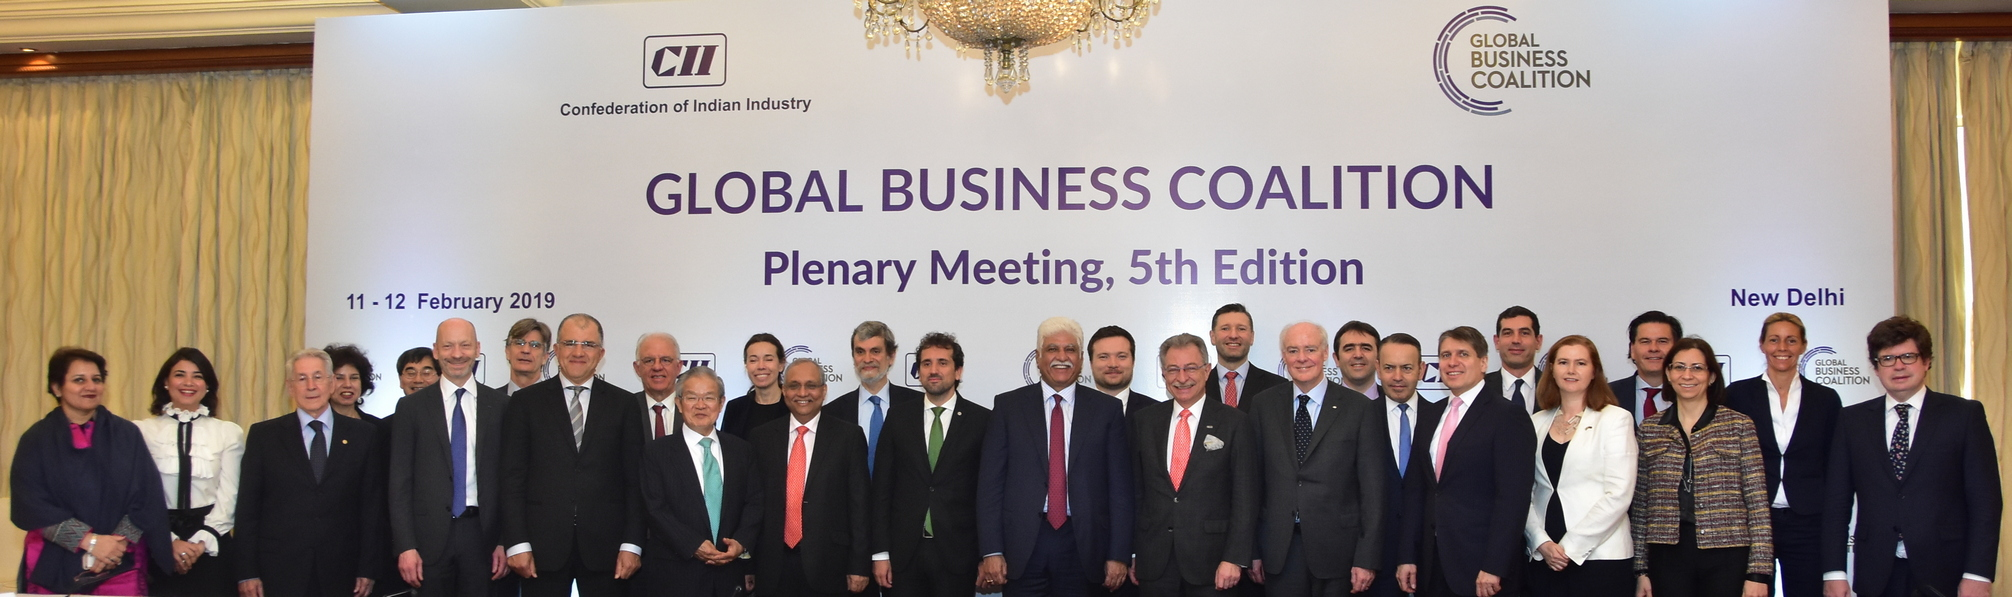 GBC Plenary 2019, New Delhi-Global Business Coalition (GBC) Presidency Handover